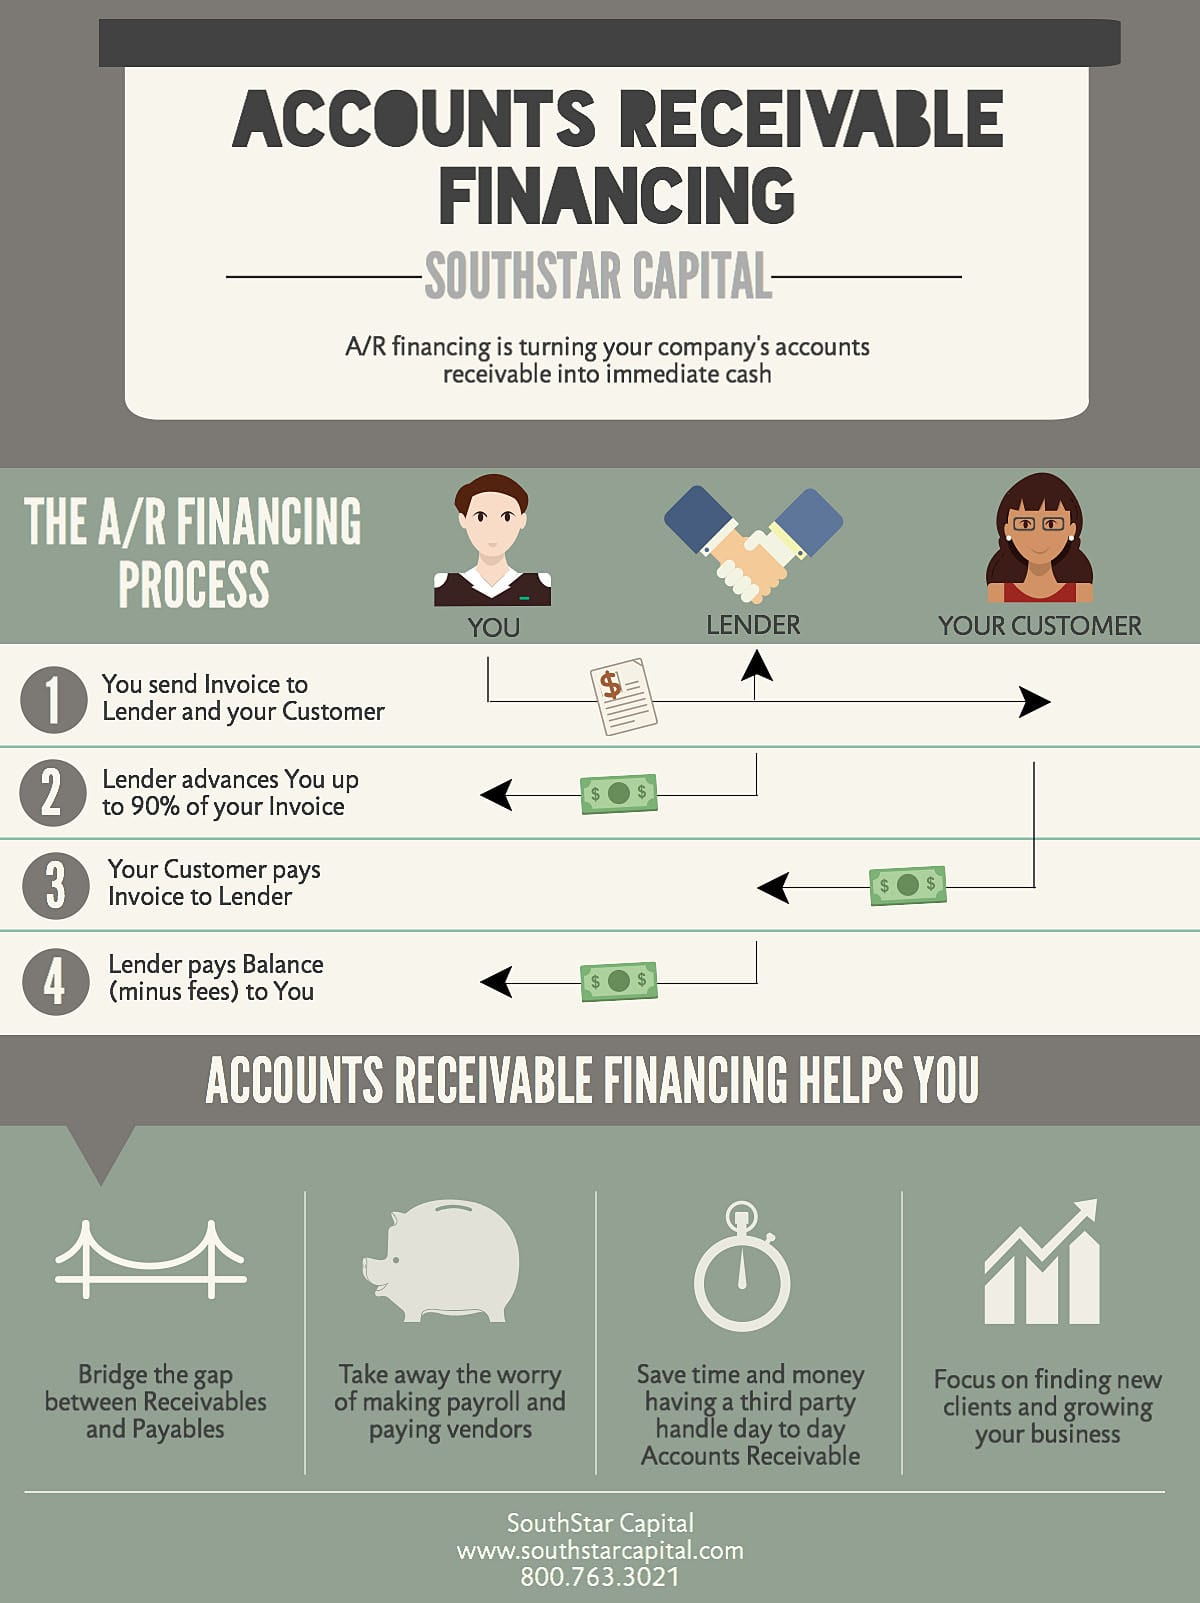 Accounts Receivable Financing 2